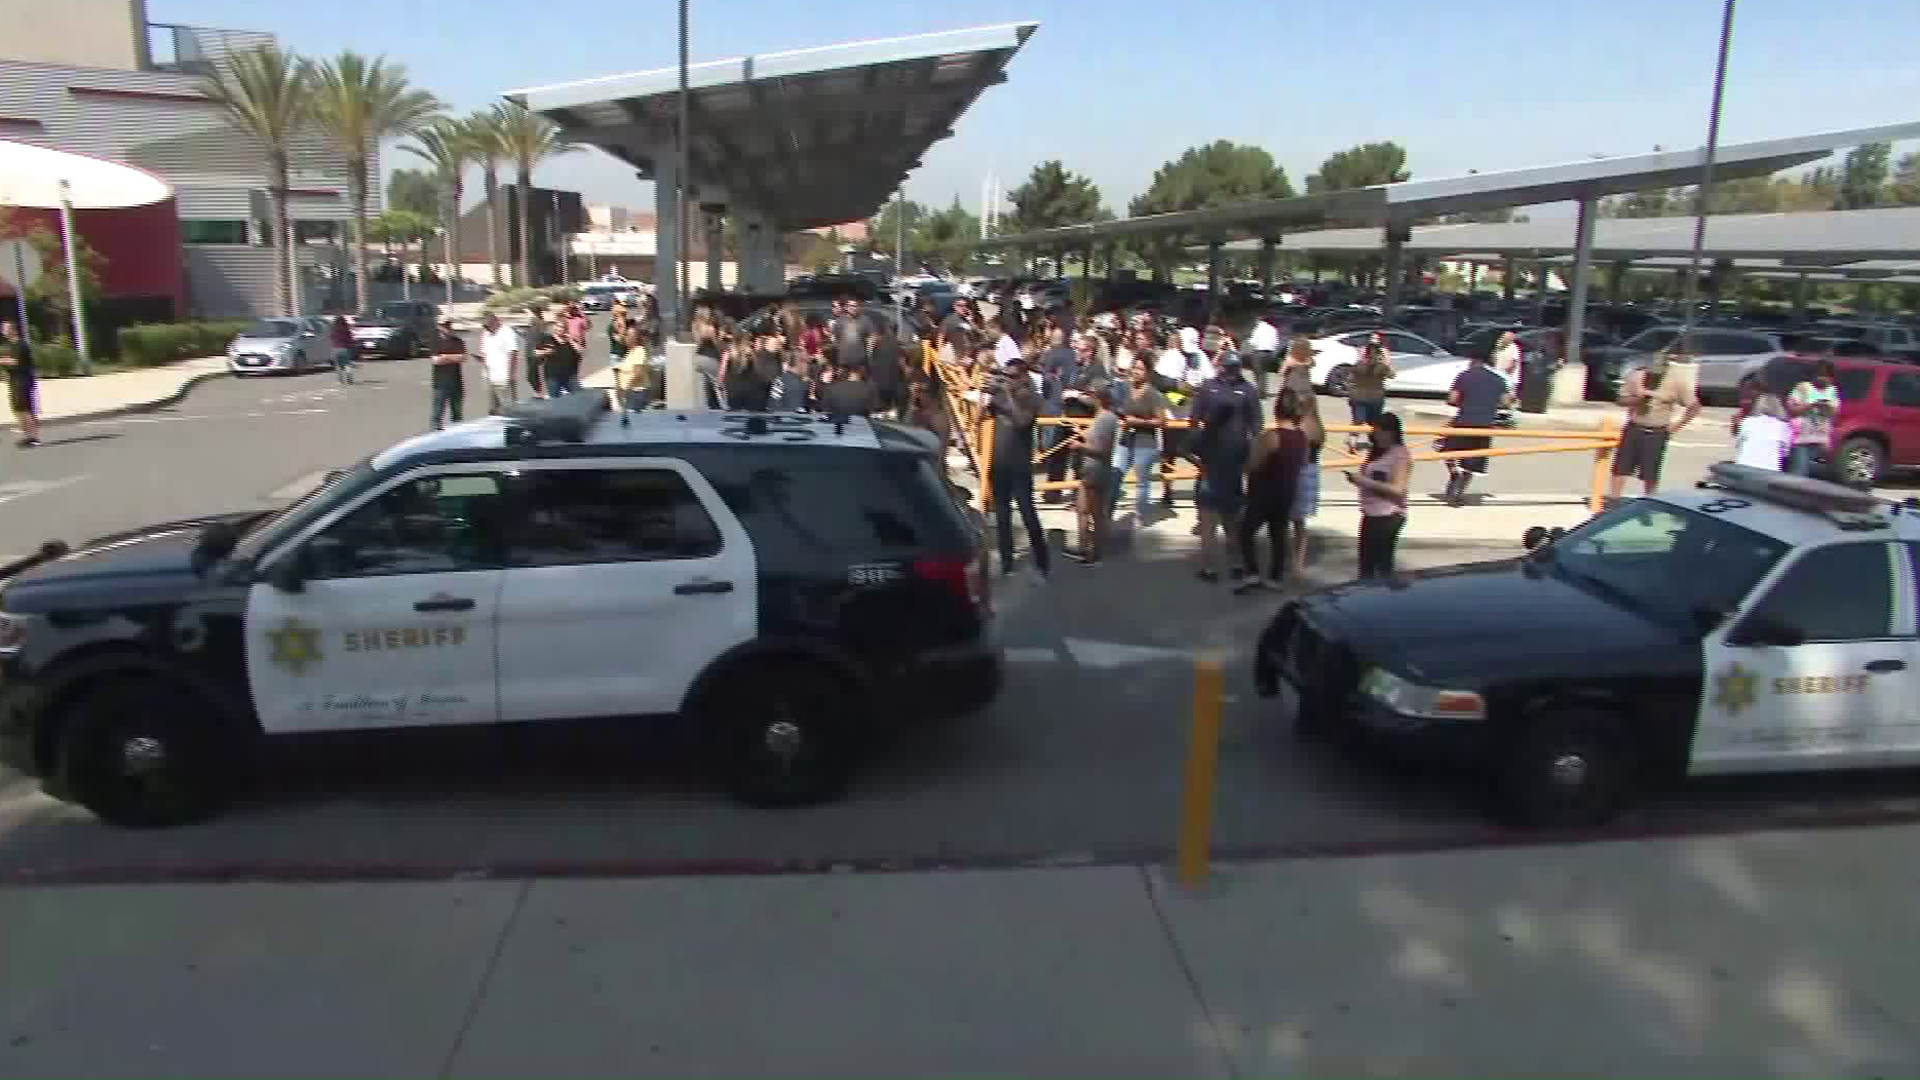 Sheriff's patrol vehicles could be seen on the San Dimas High School campus on Aug. 22, 2019. (Credit: KTLA)